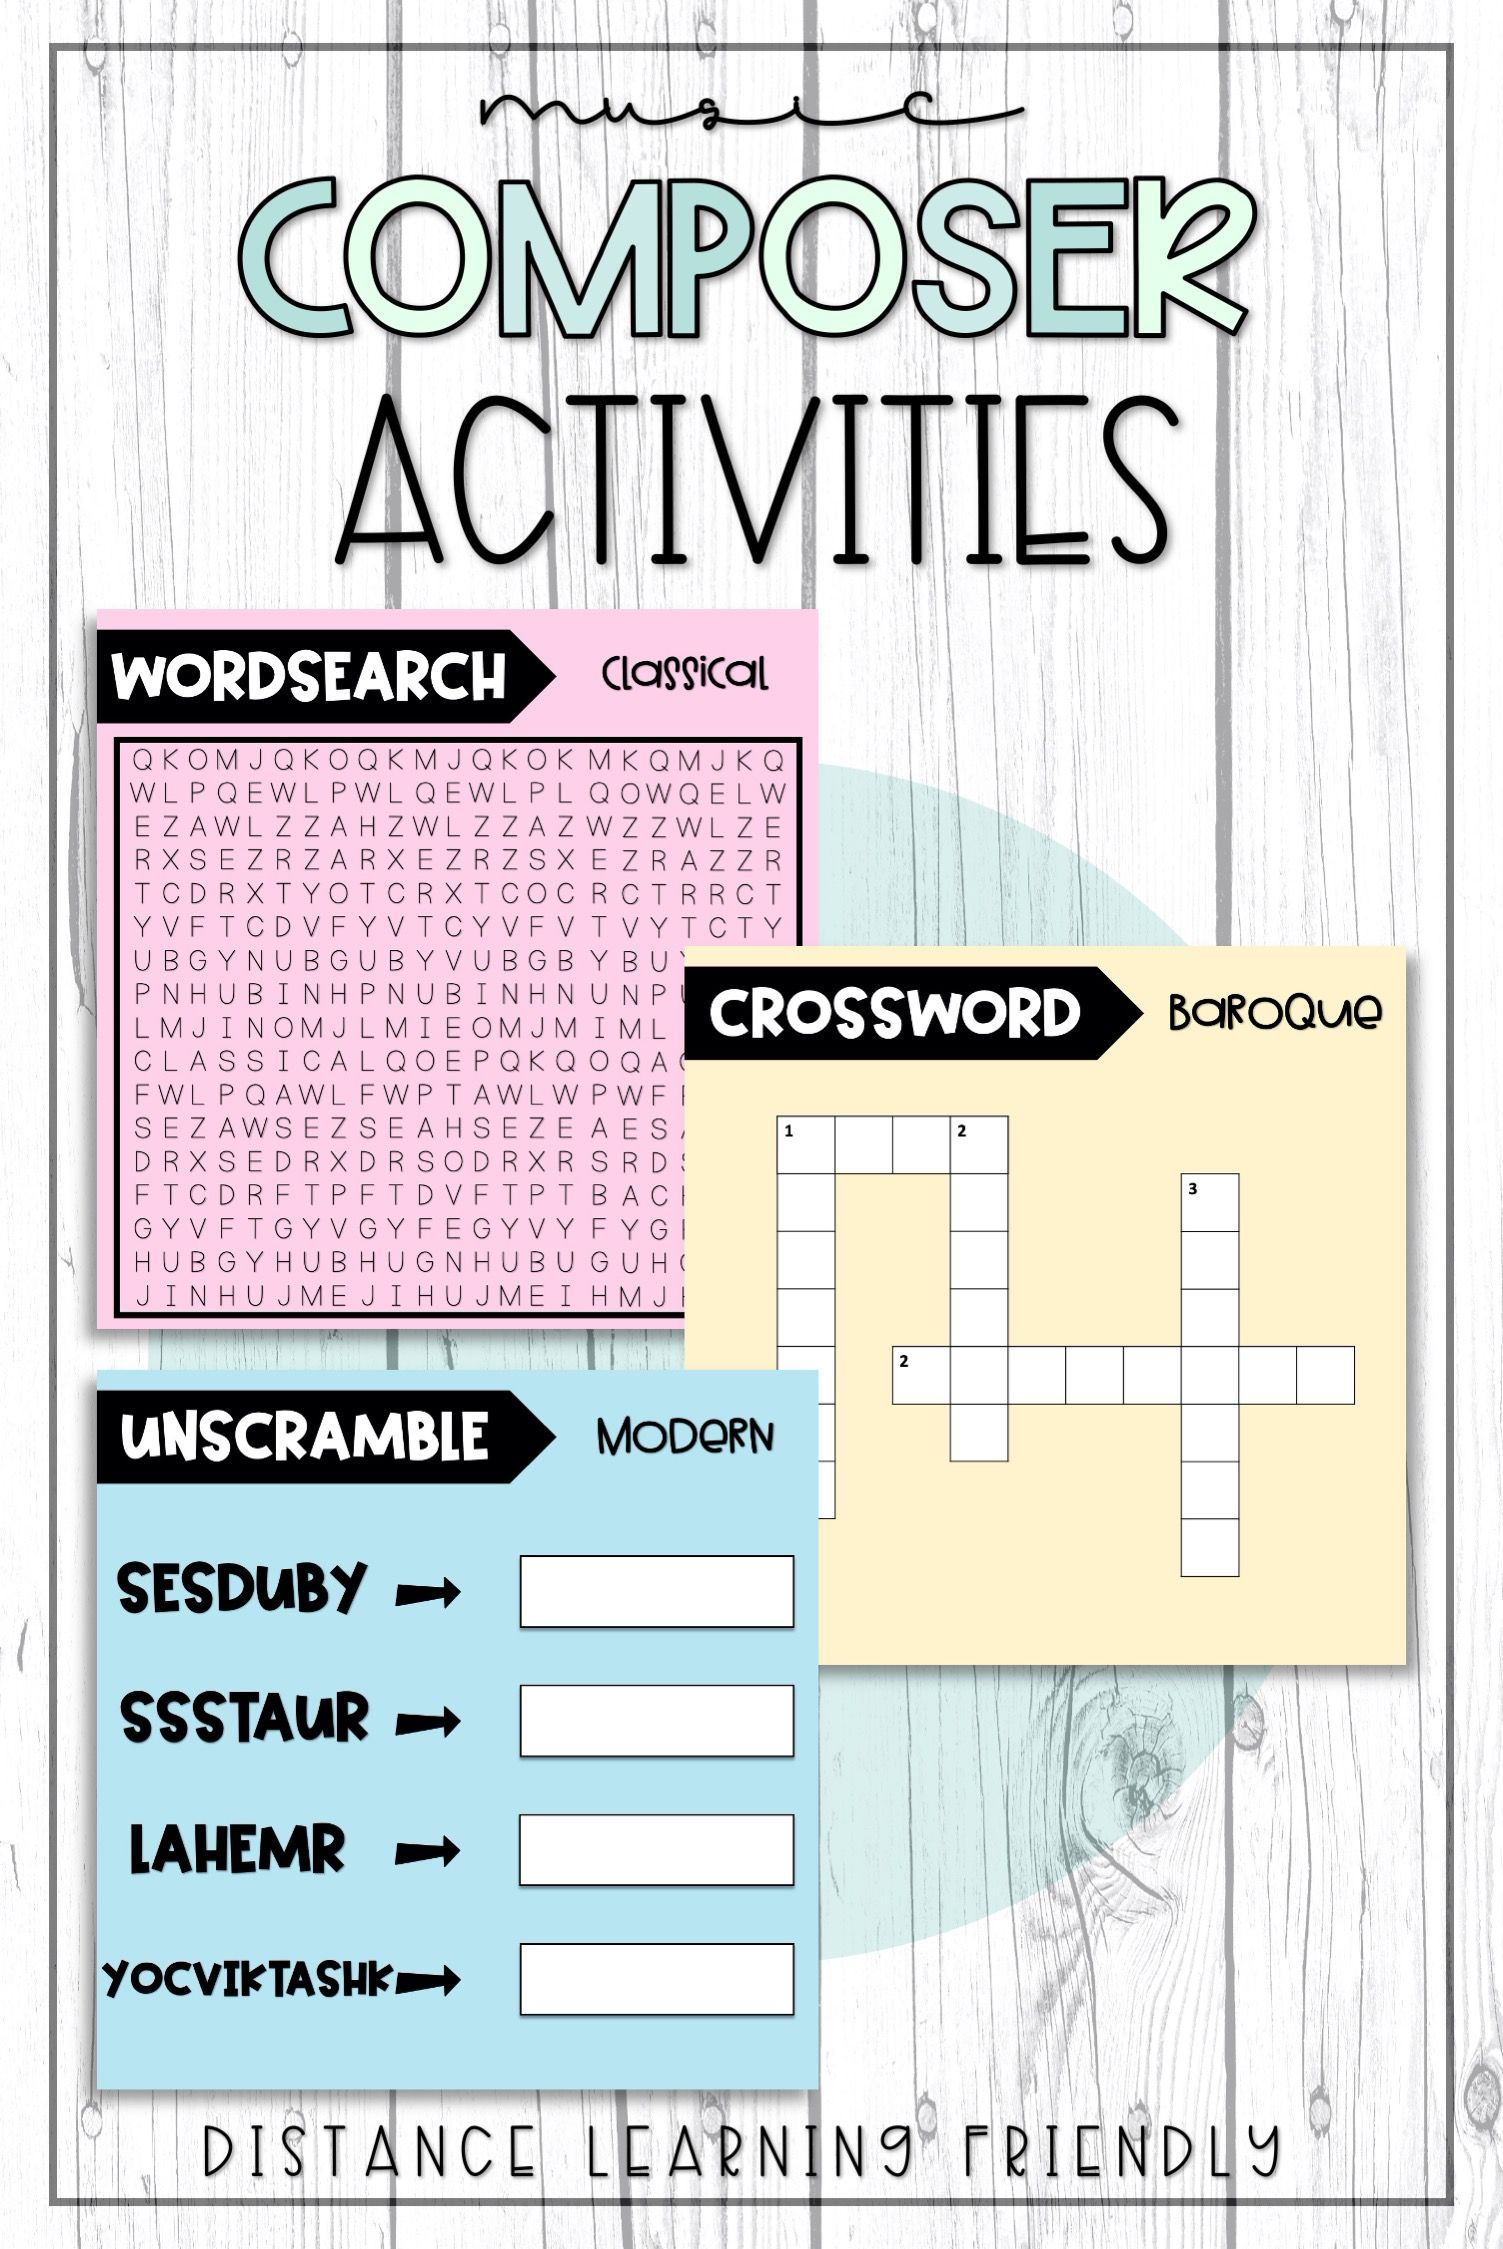 Composer Activities In 2020 Composer Activities Distance Learning Music Class Activities